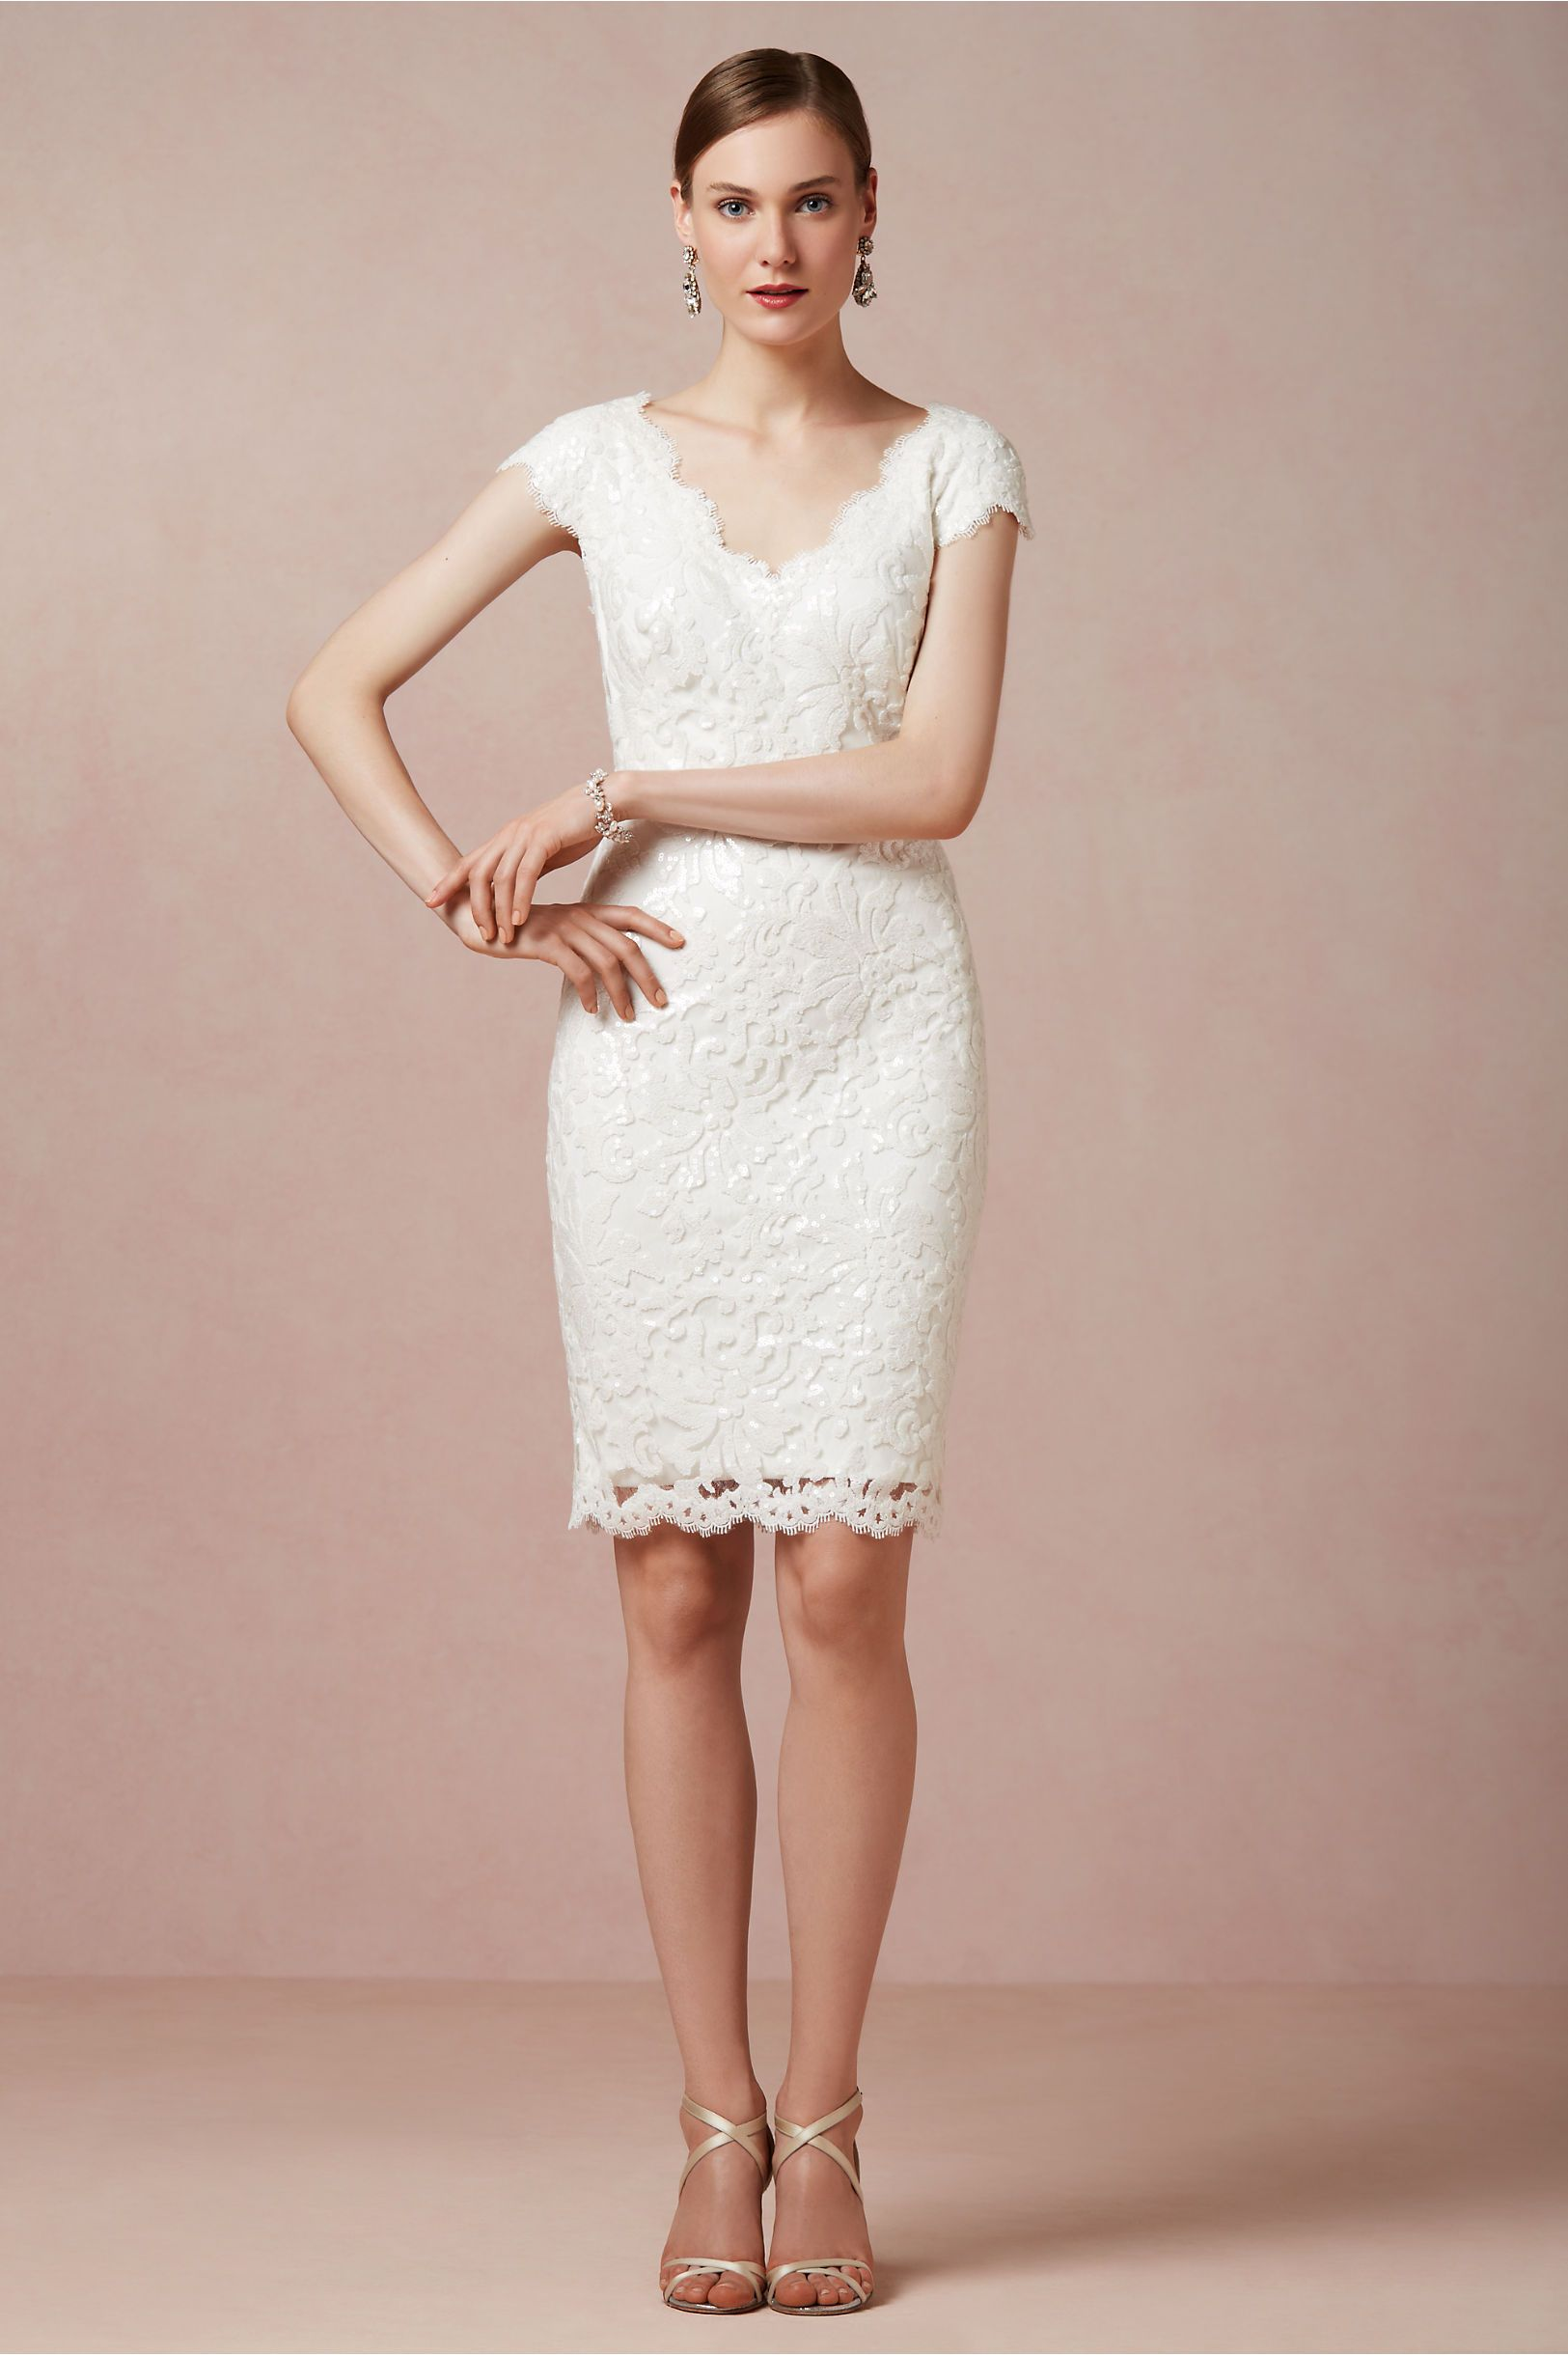 Elopement dress on sale at bhldn. | Wedding | Pinterest | Vestidos ...